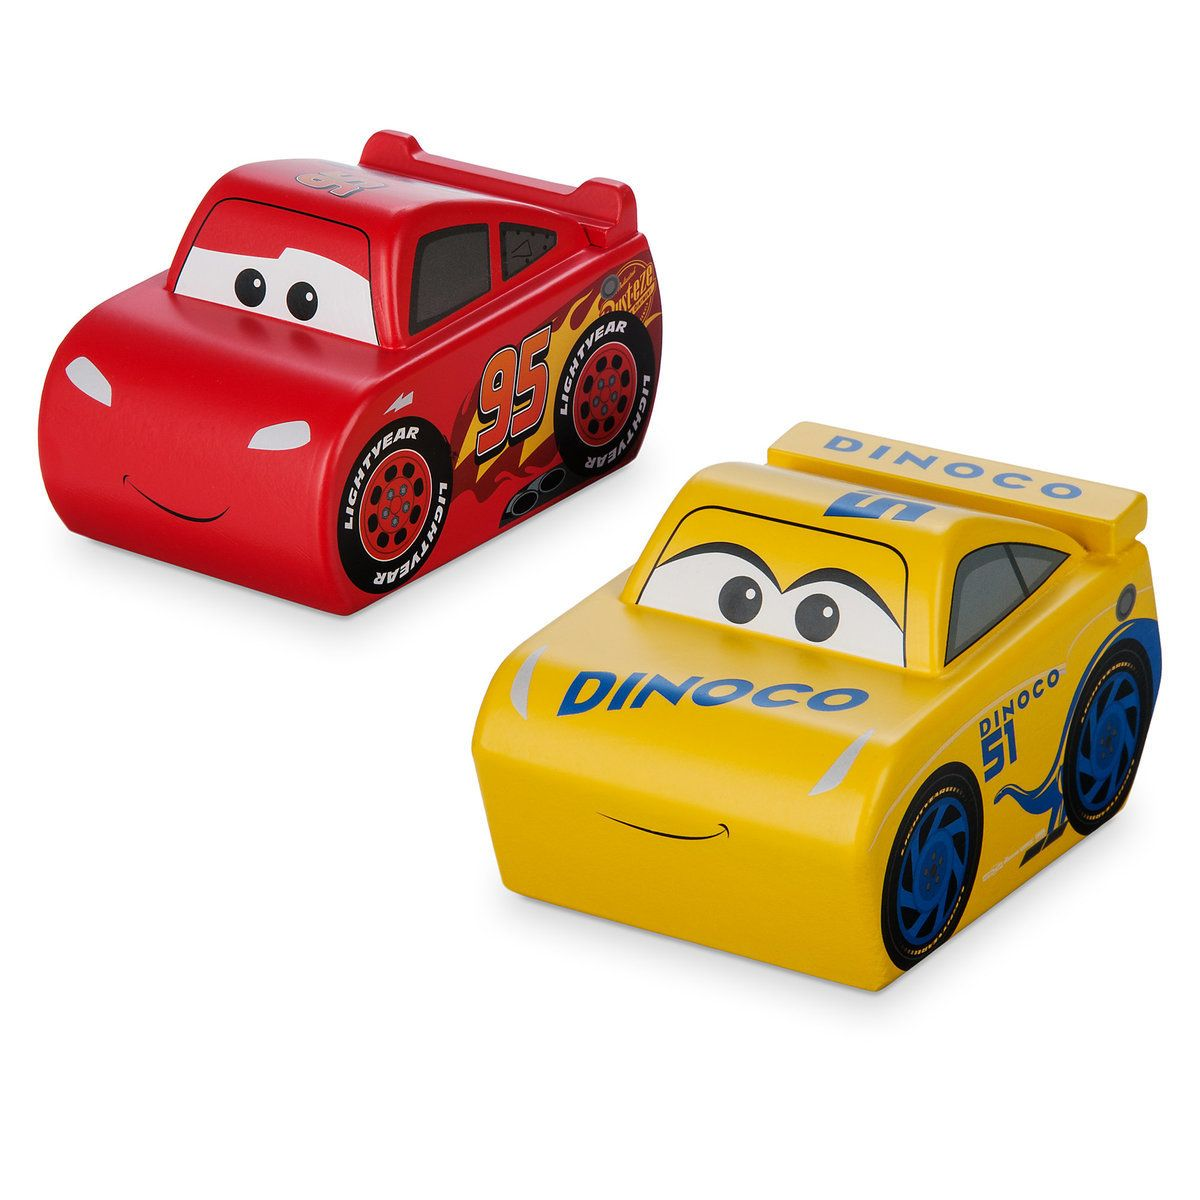 These recall my precious red car-shaped juice box holder...;____ ...